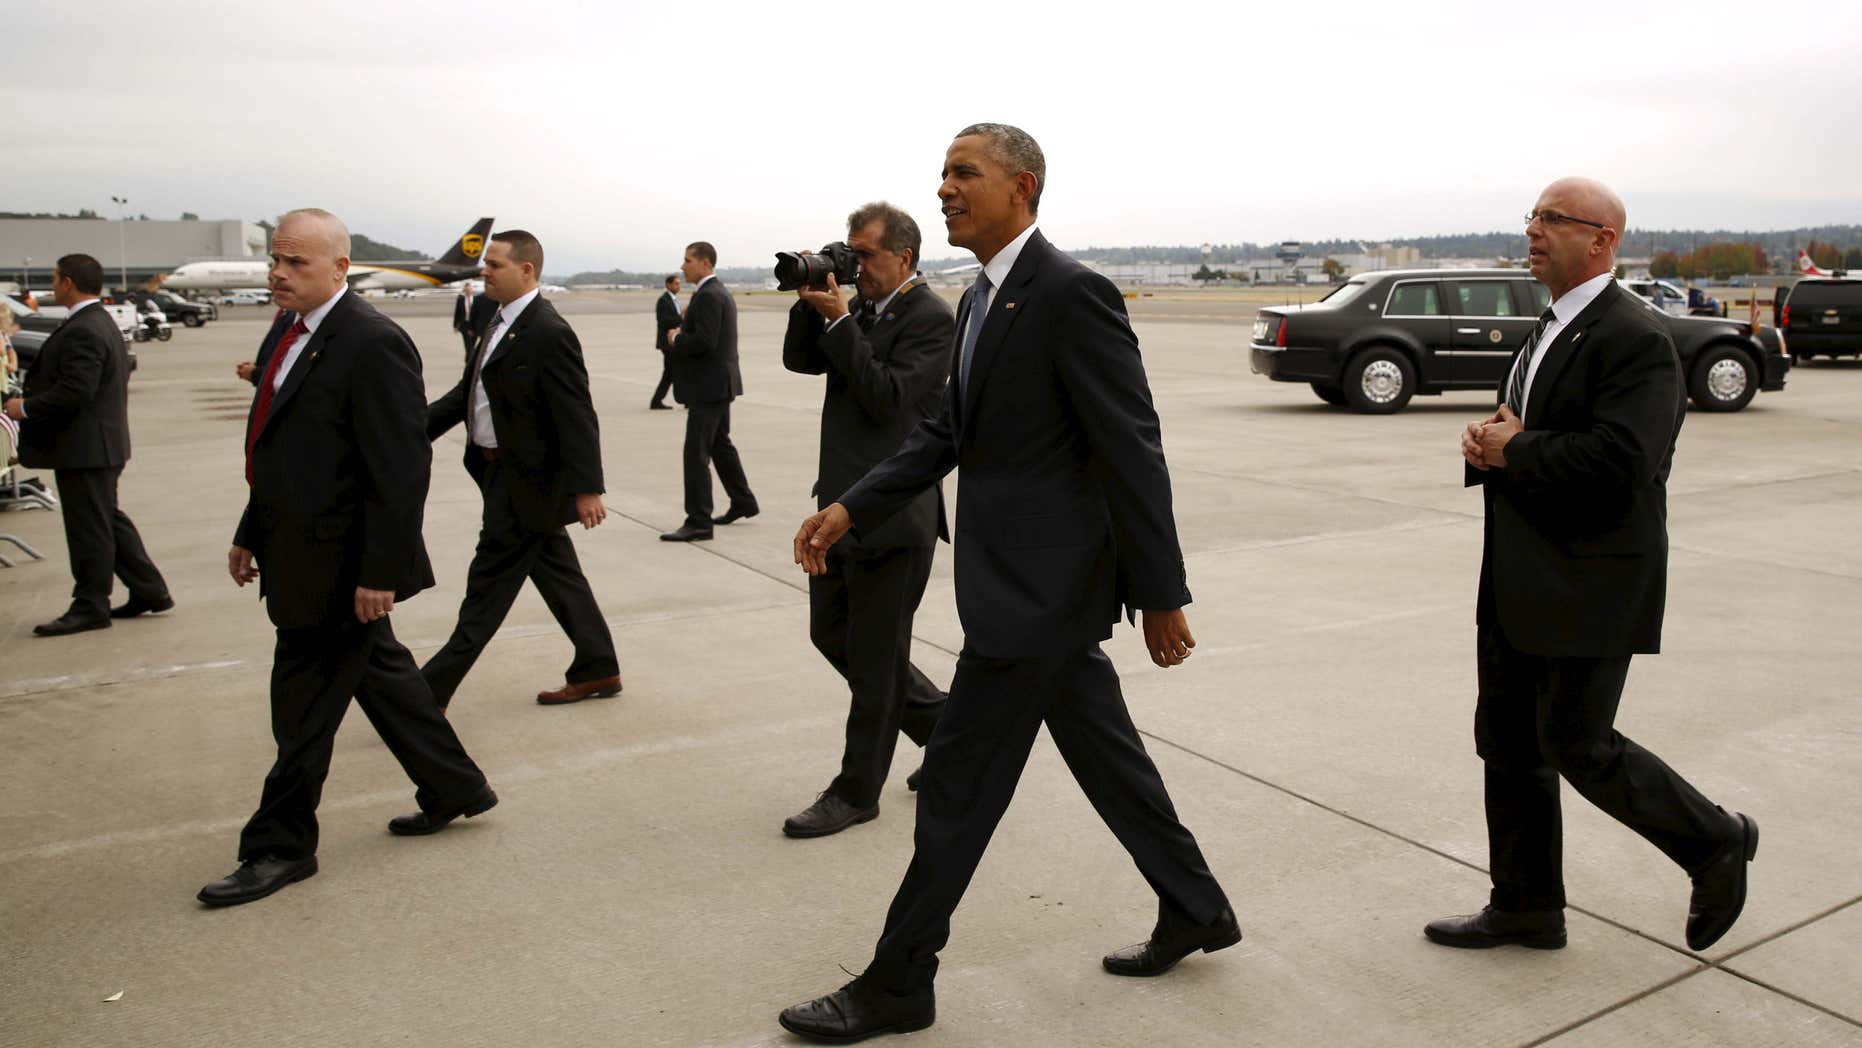 Oct. 9, 2015: Members of the Secret Service escort President Barack Obama to greet supporters upon his arrival in Seattle, Washington.